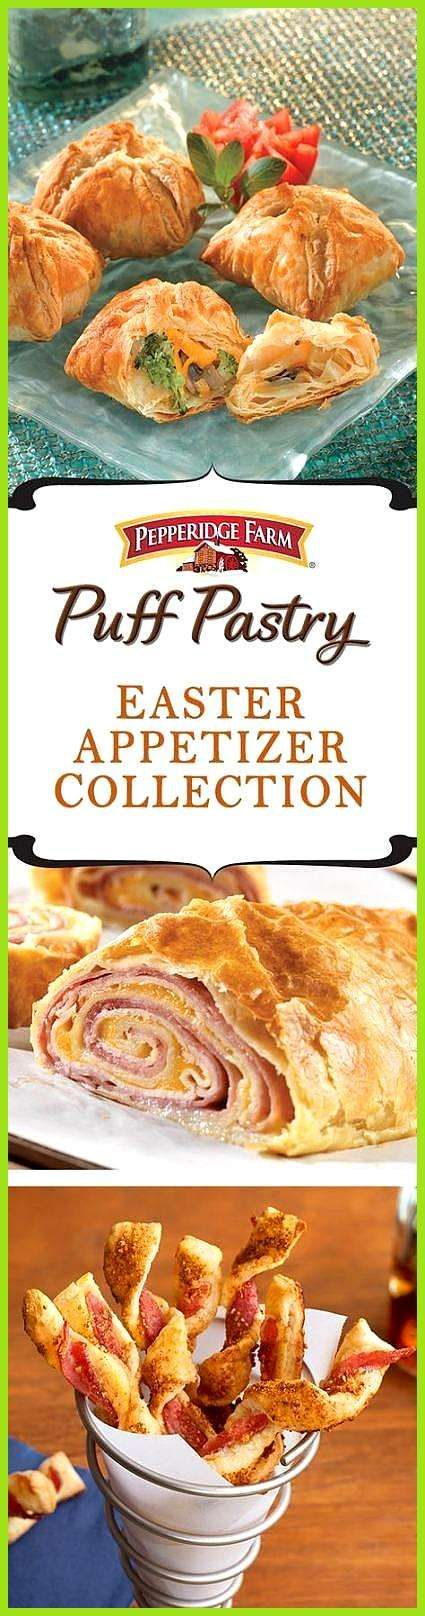 44 ideas appetizers puff pastry lunches for 2019 Appetizers BestAppetizers2 44 ideas appetizers p